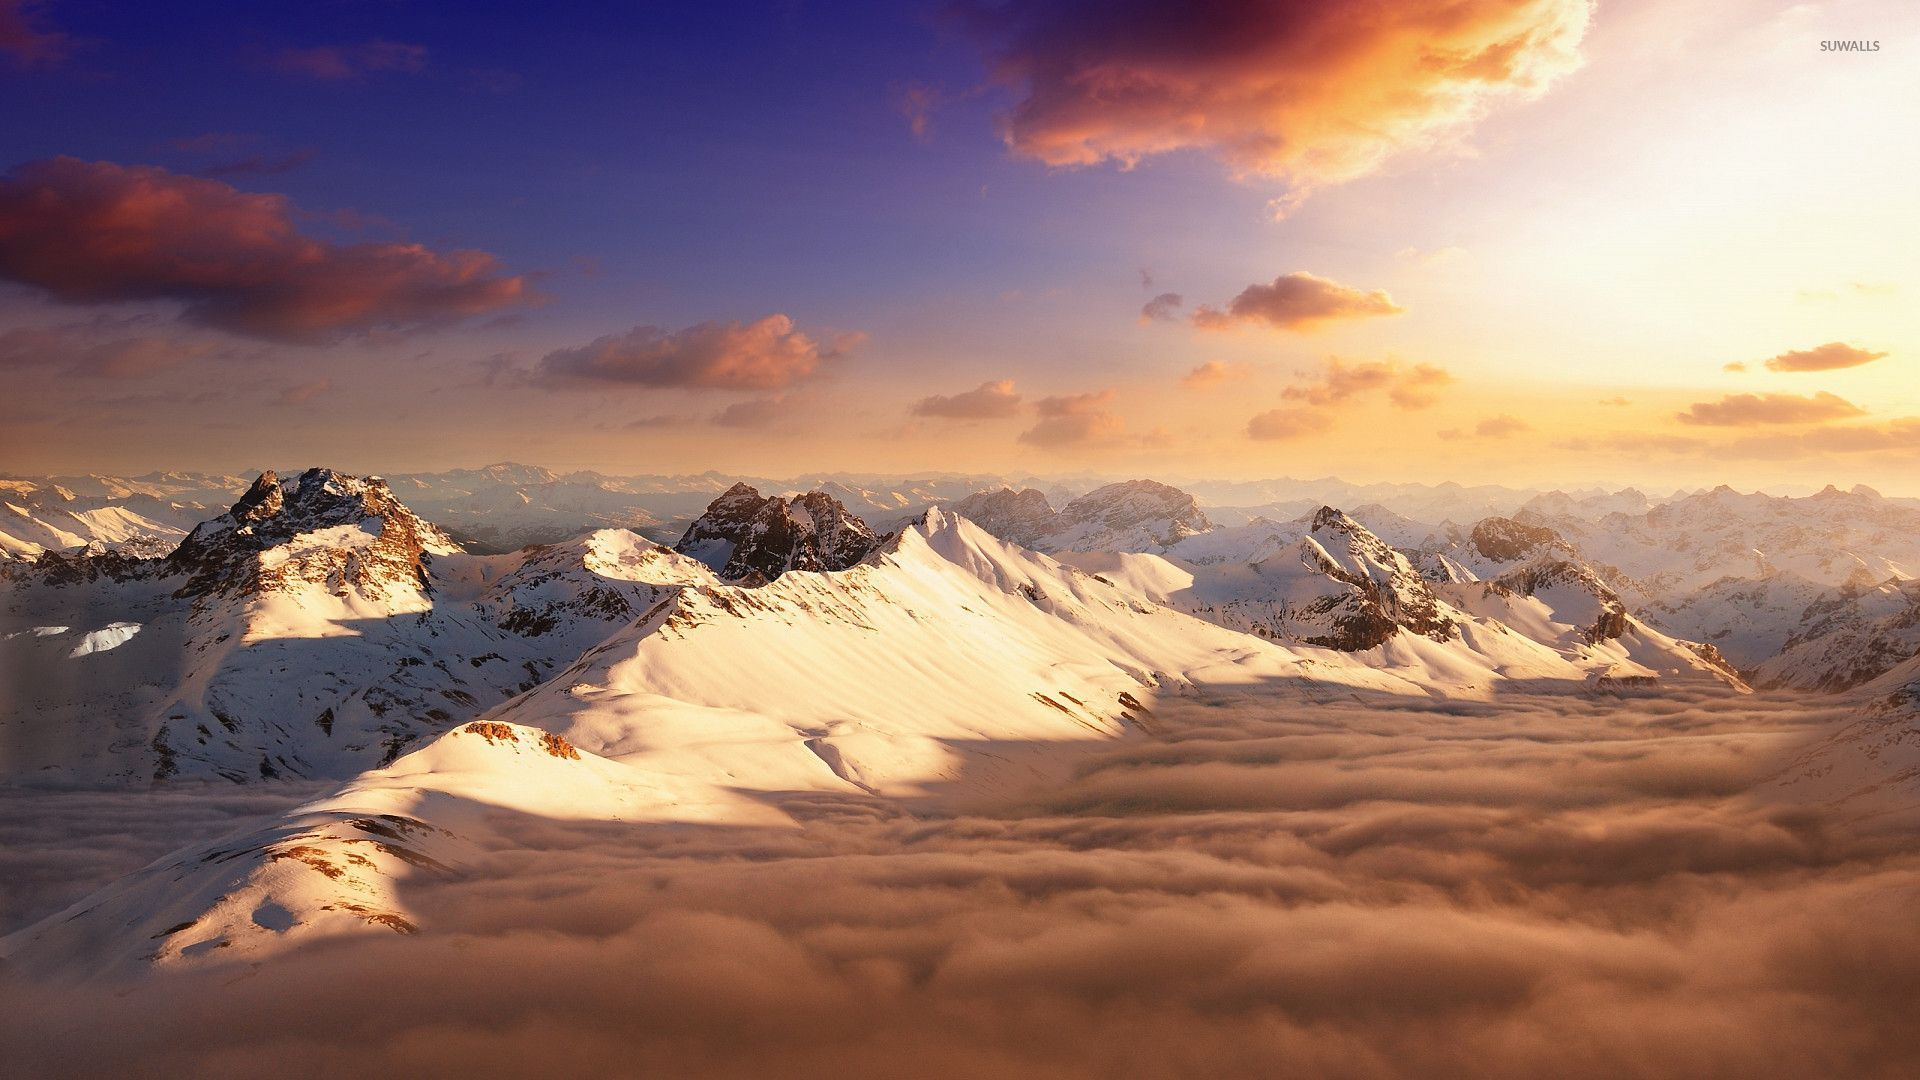 Good Wallpaper Mountain Cloud - snowy-mountain-peaks-above-the-clouds-26426-1920x1080  Collection_23387.jpg